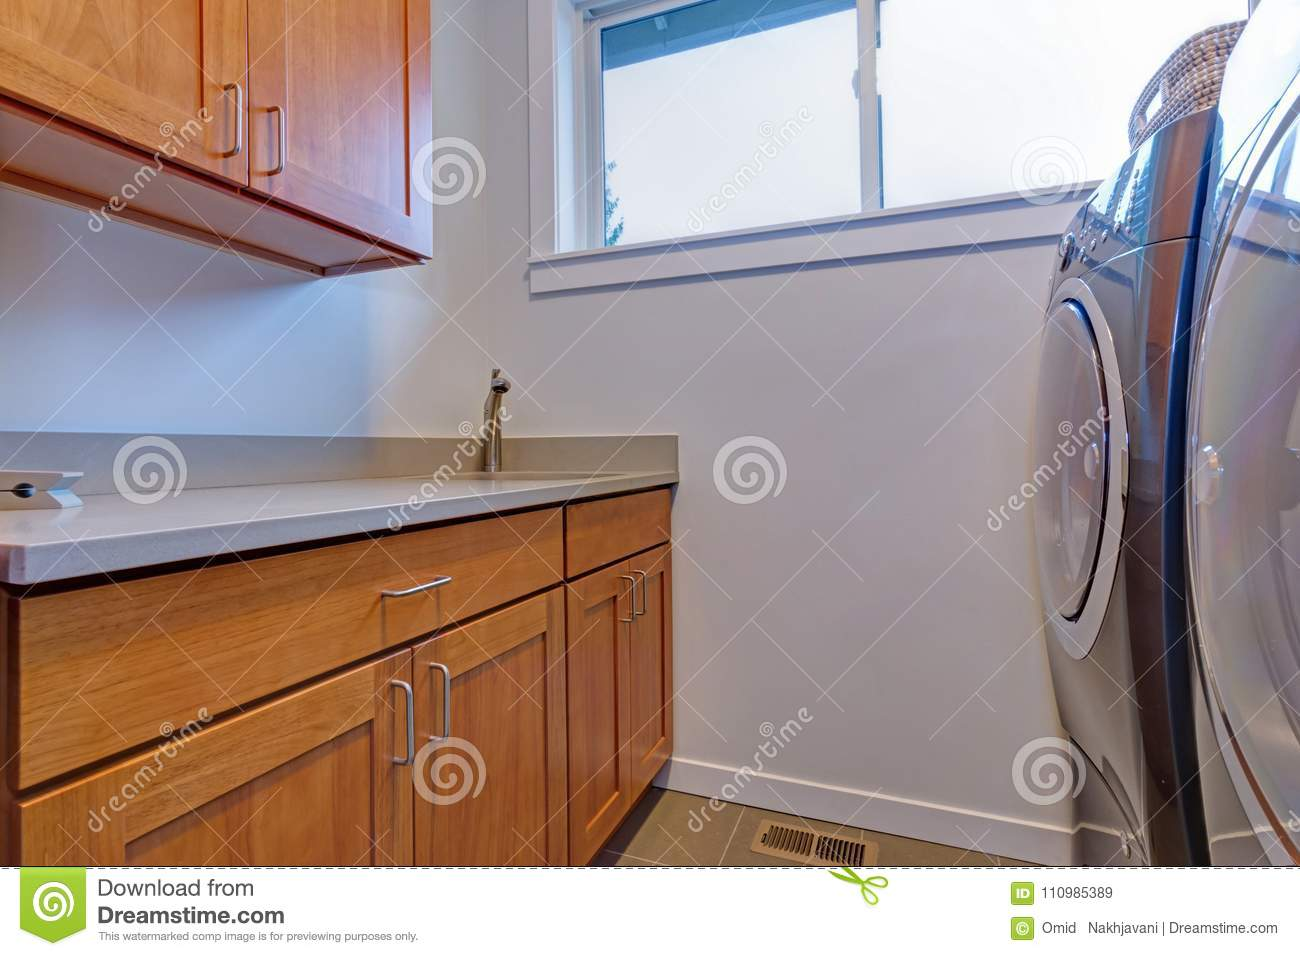 Interior of laundry room with wooden cabinets